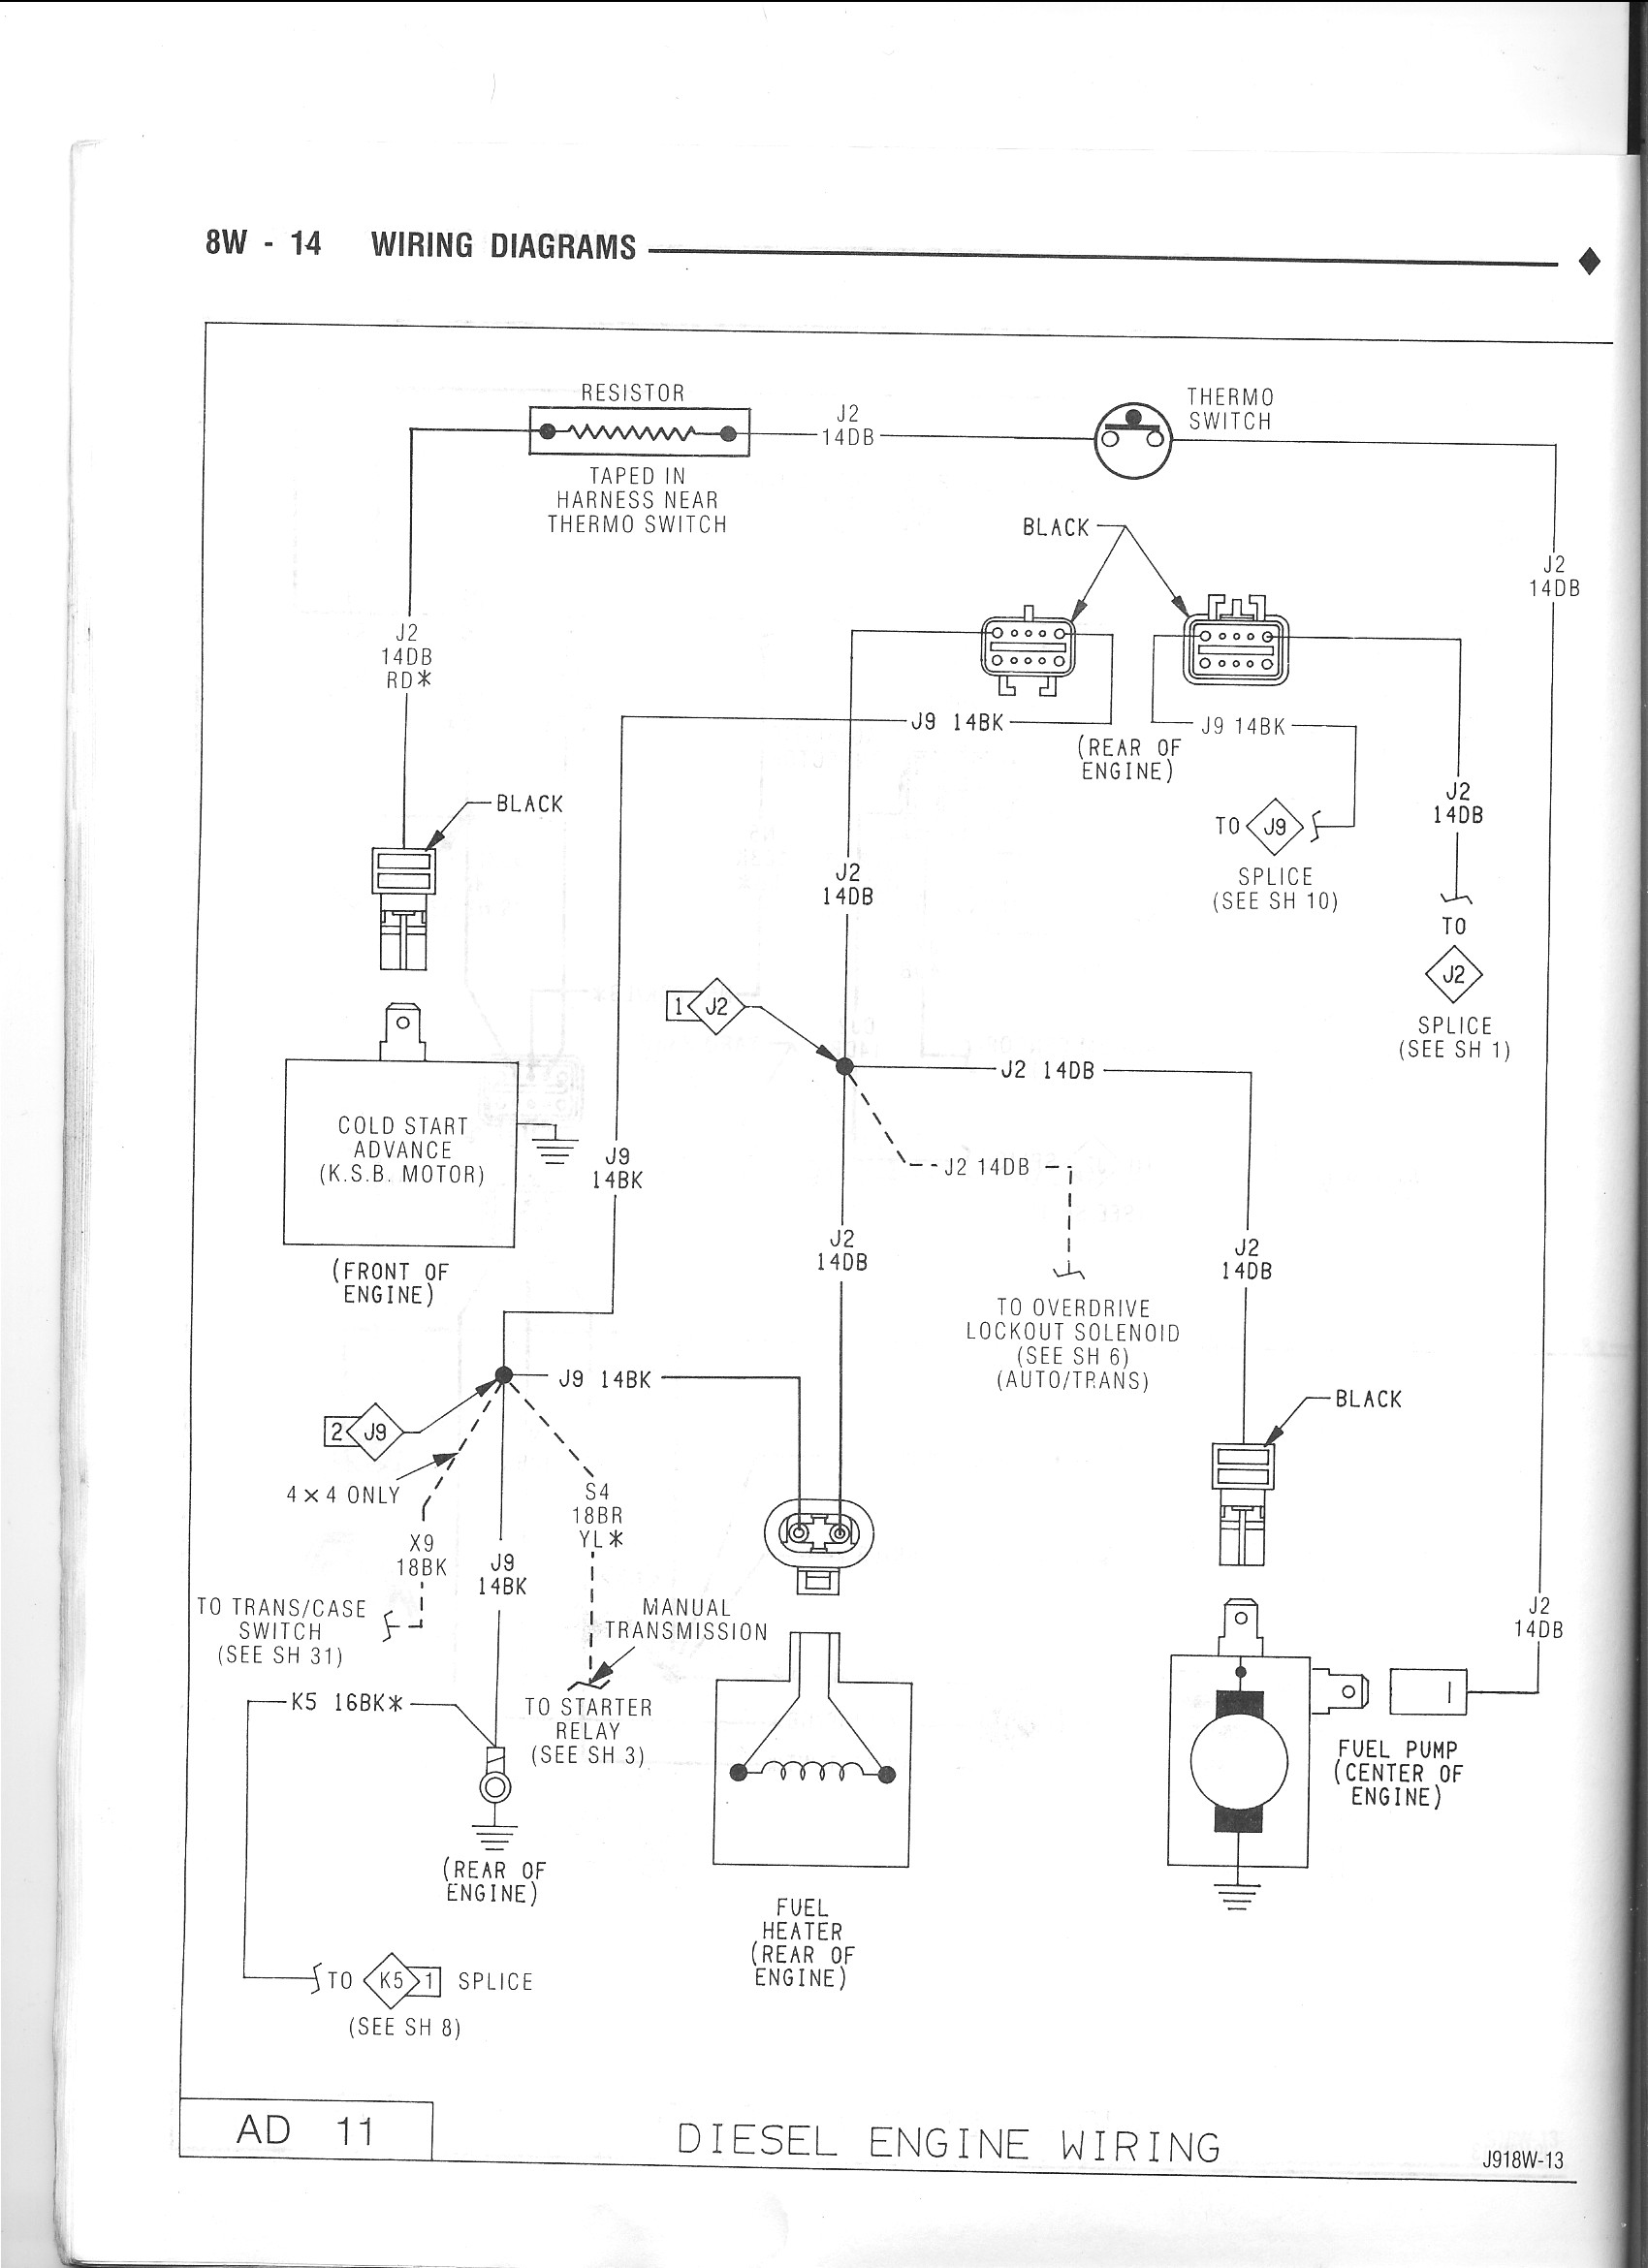 1991 dodge pickup wiring diagram 1stgen.org • view topic - another non-ic ksb question